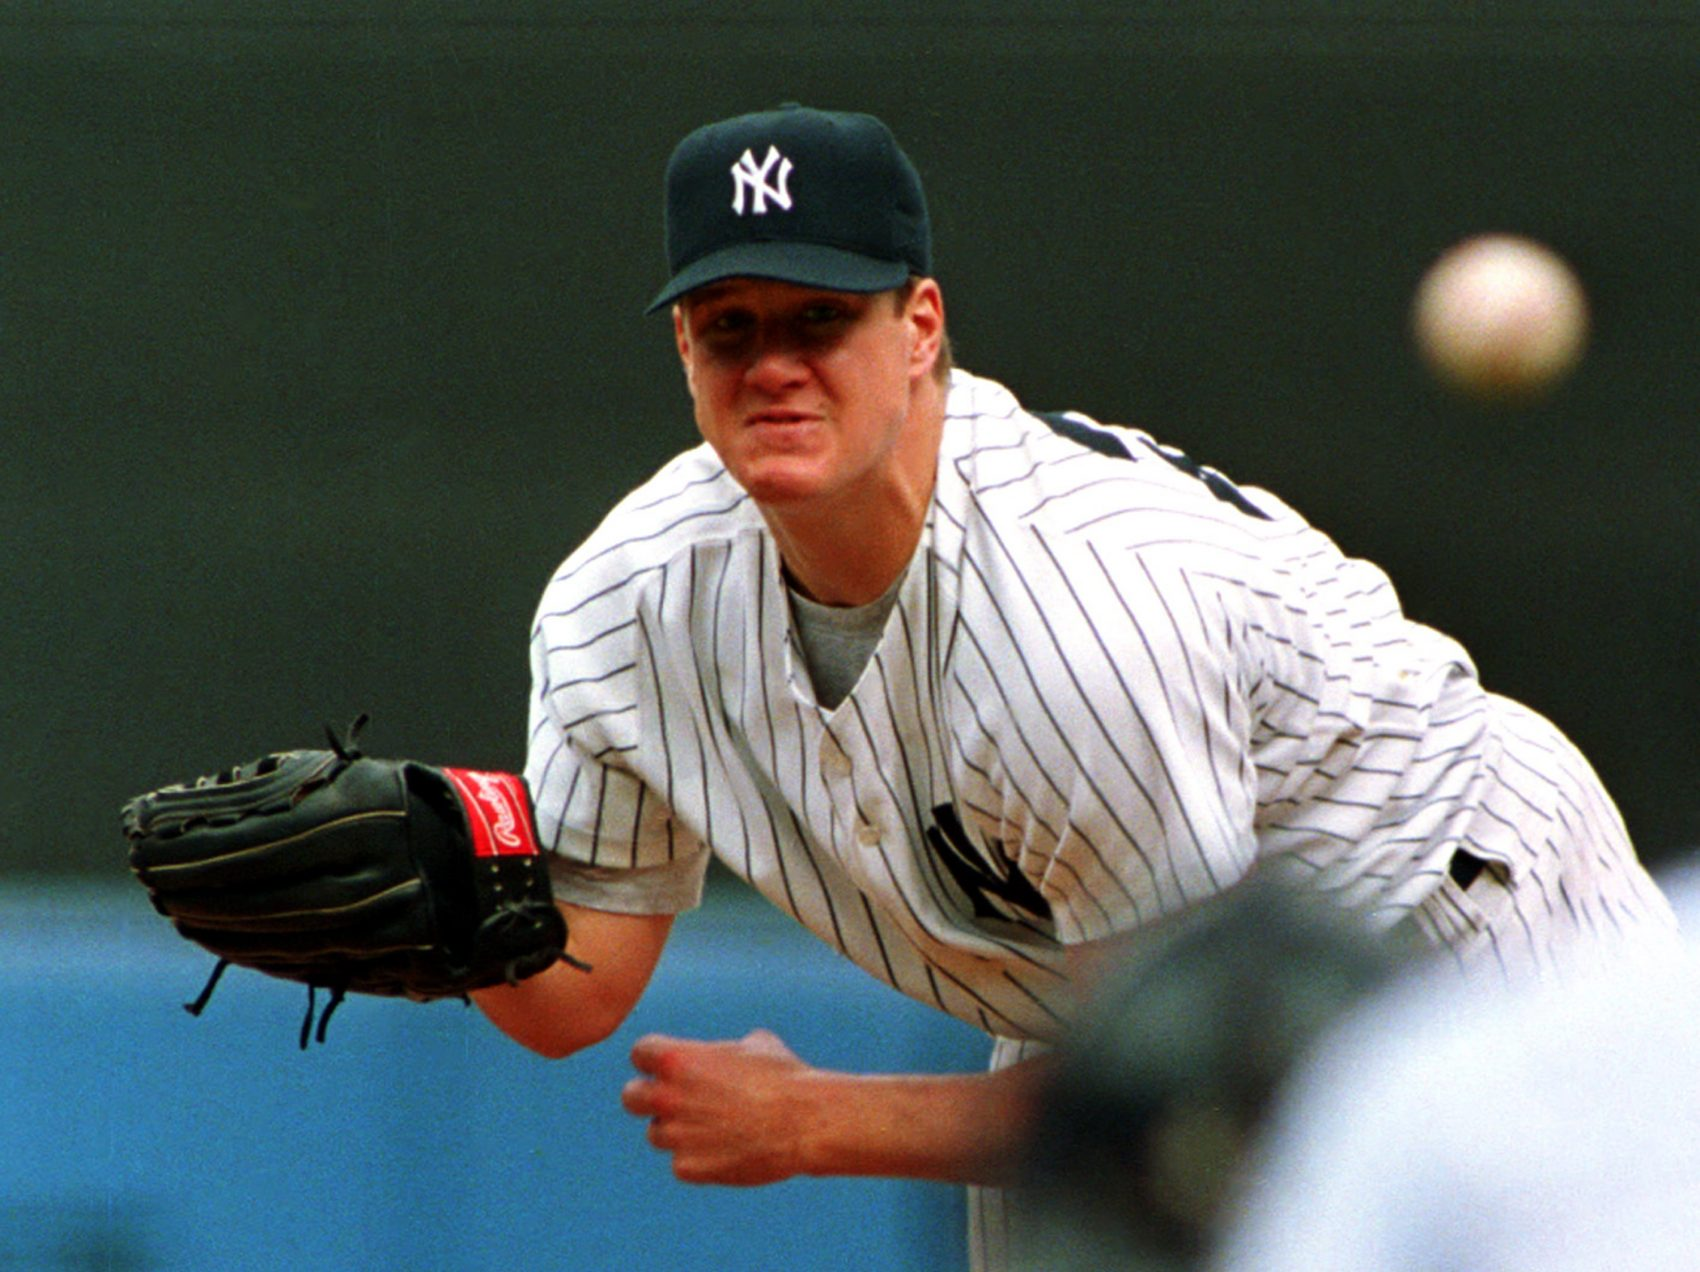 Jim Abbott, then a Yankee, throws a pitch during his no-hitter against the Cleveland Indians on Sept. 4, 1993. (Kevin Larkin/AP)